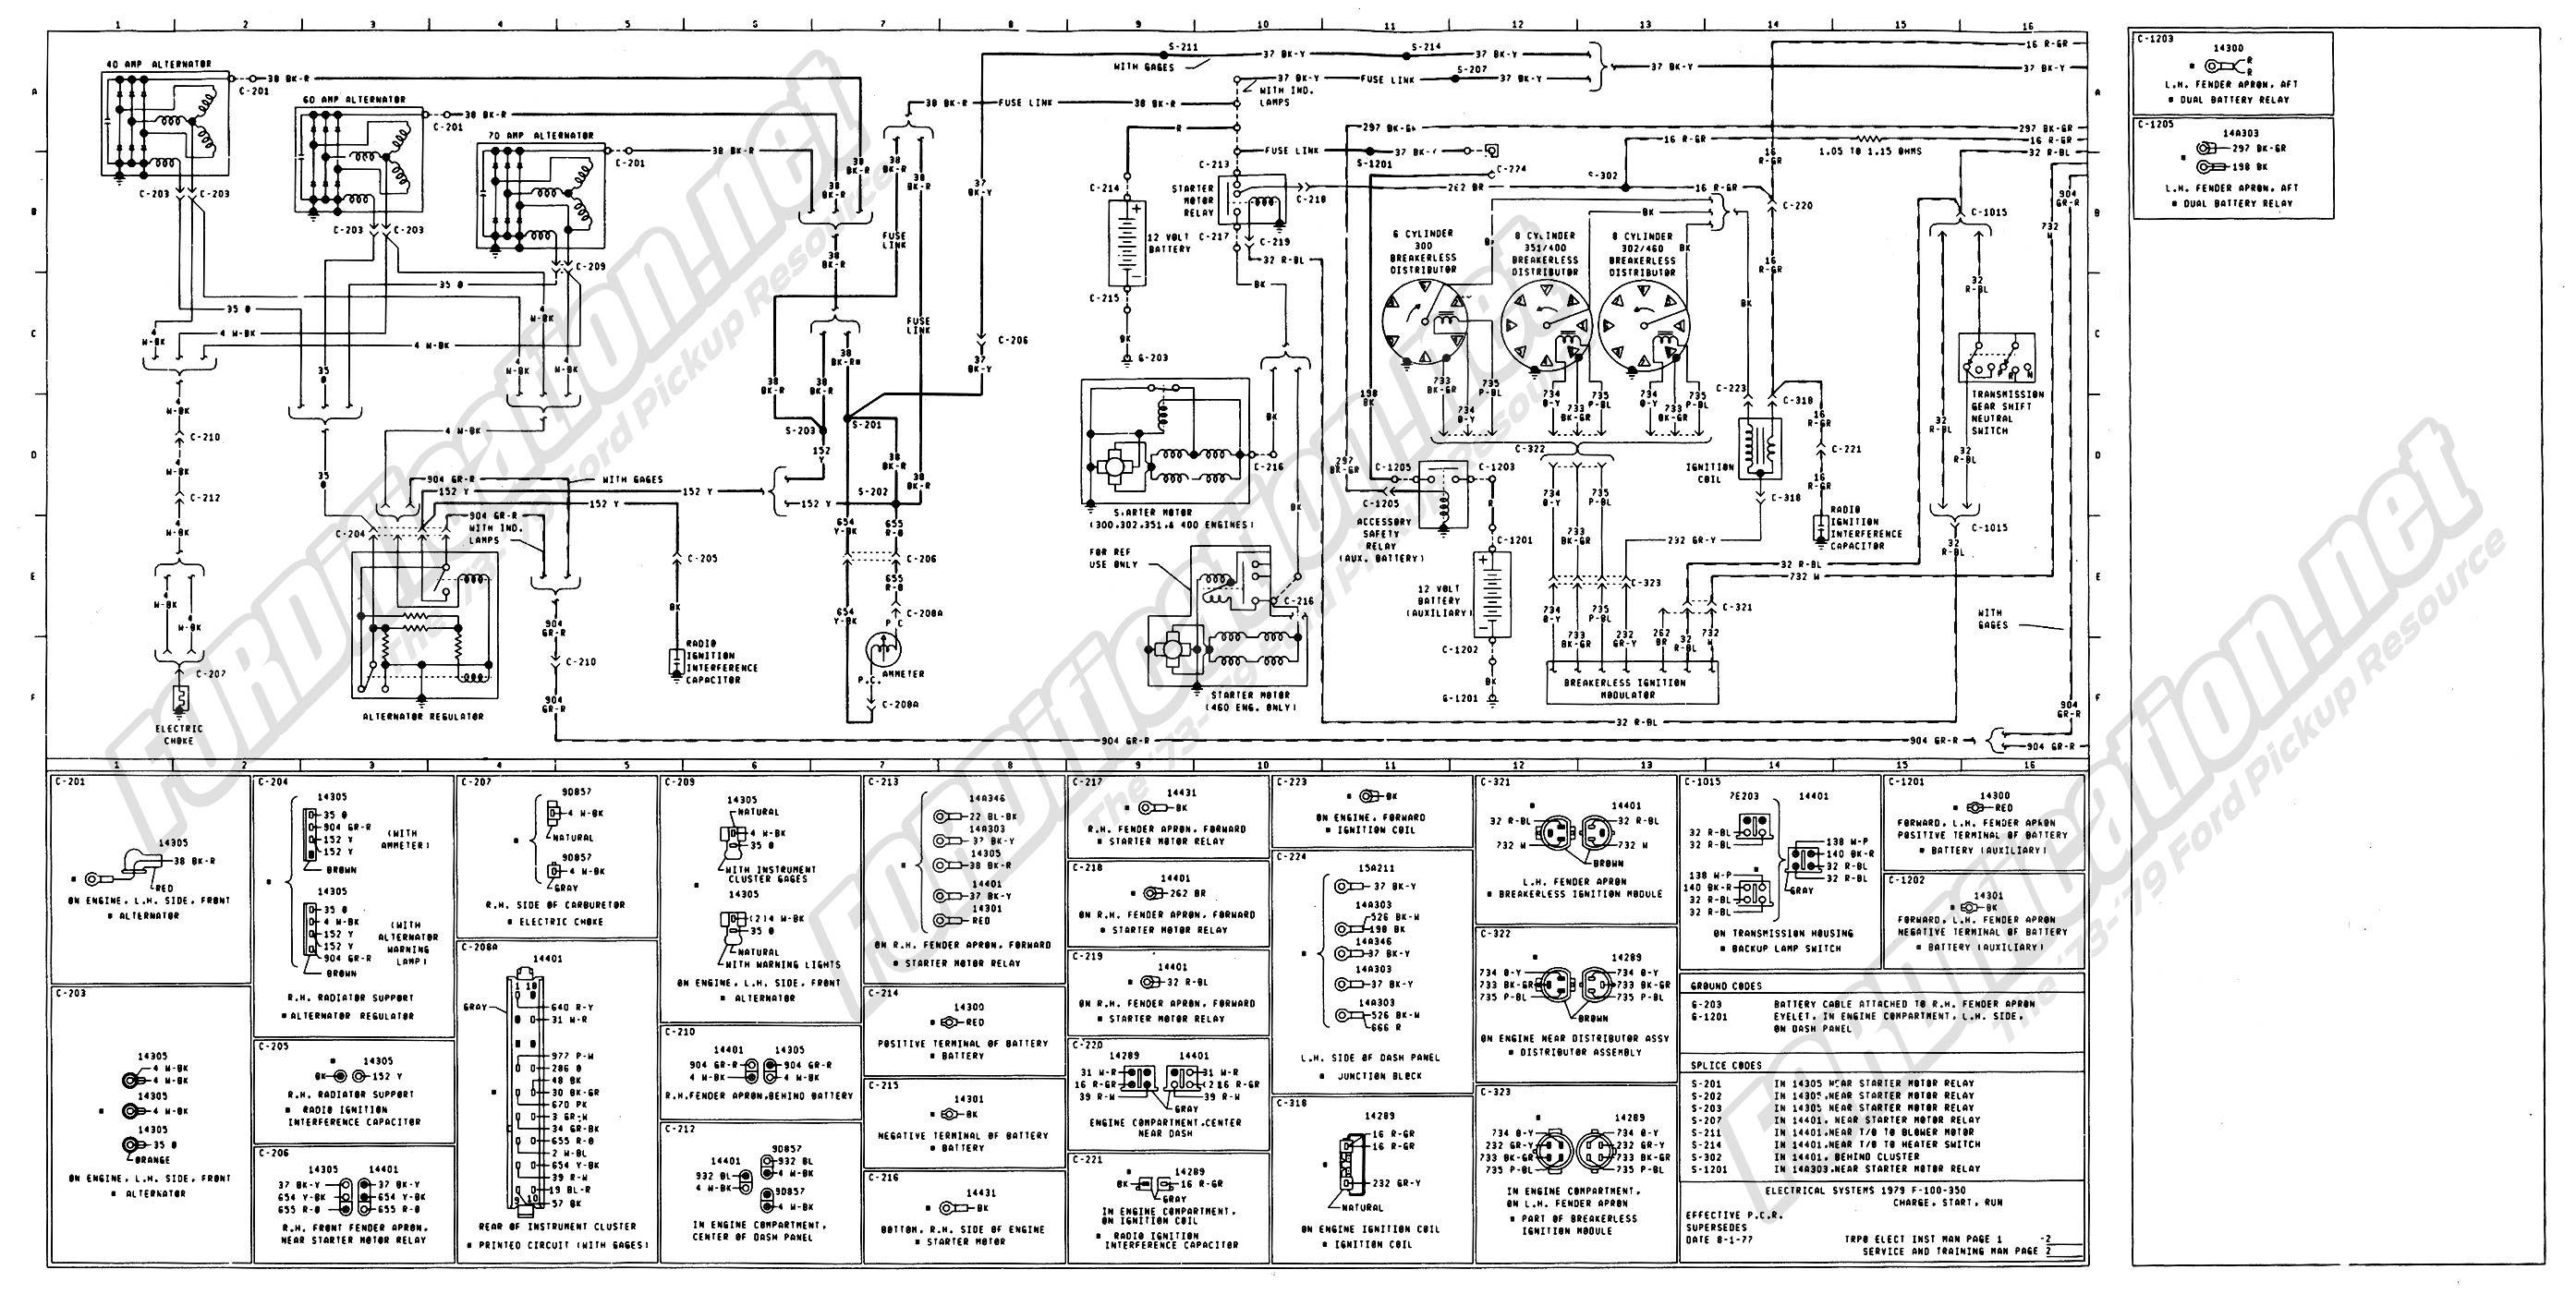 351 Cleveland Wiring Diagram List Of Schematic Circuit Distributor 1973 1979 Ford Truck Diagrams Schematics Fordification Net Rh Alternator